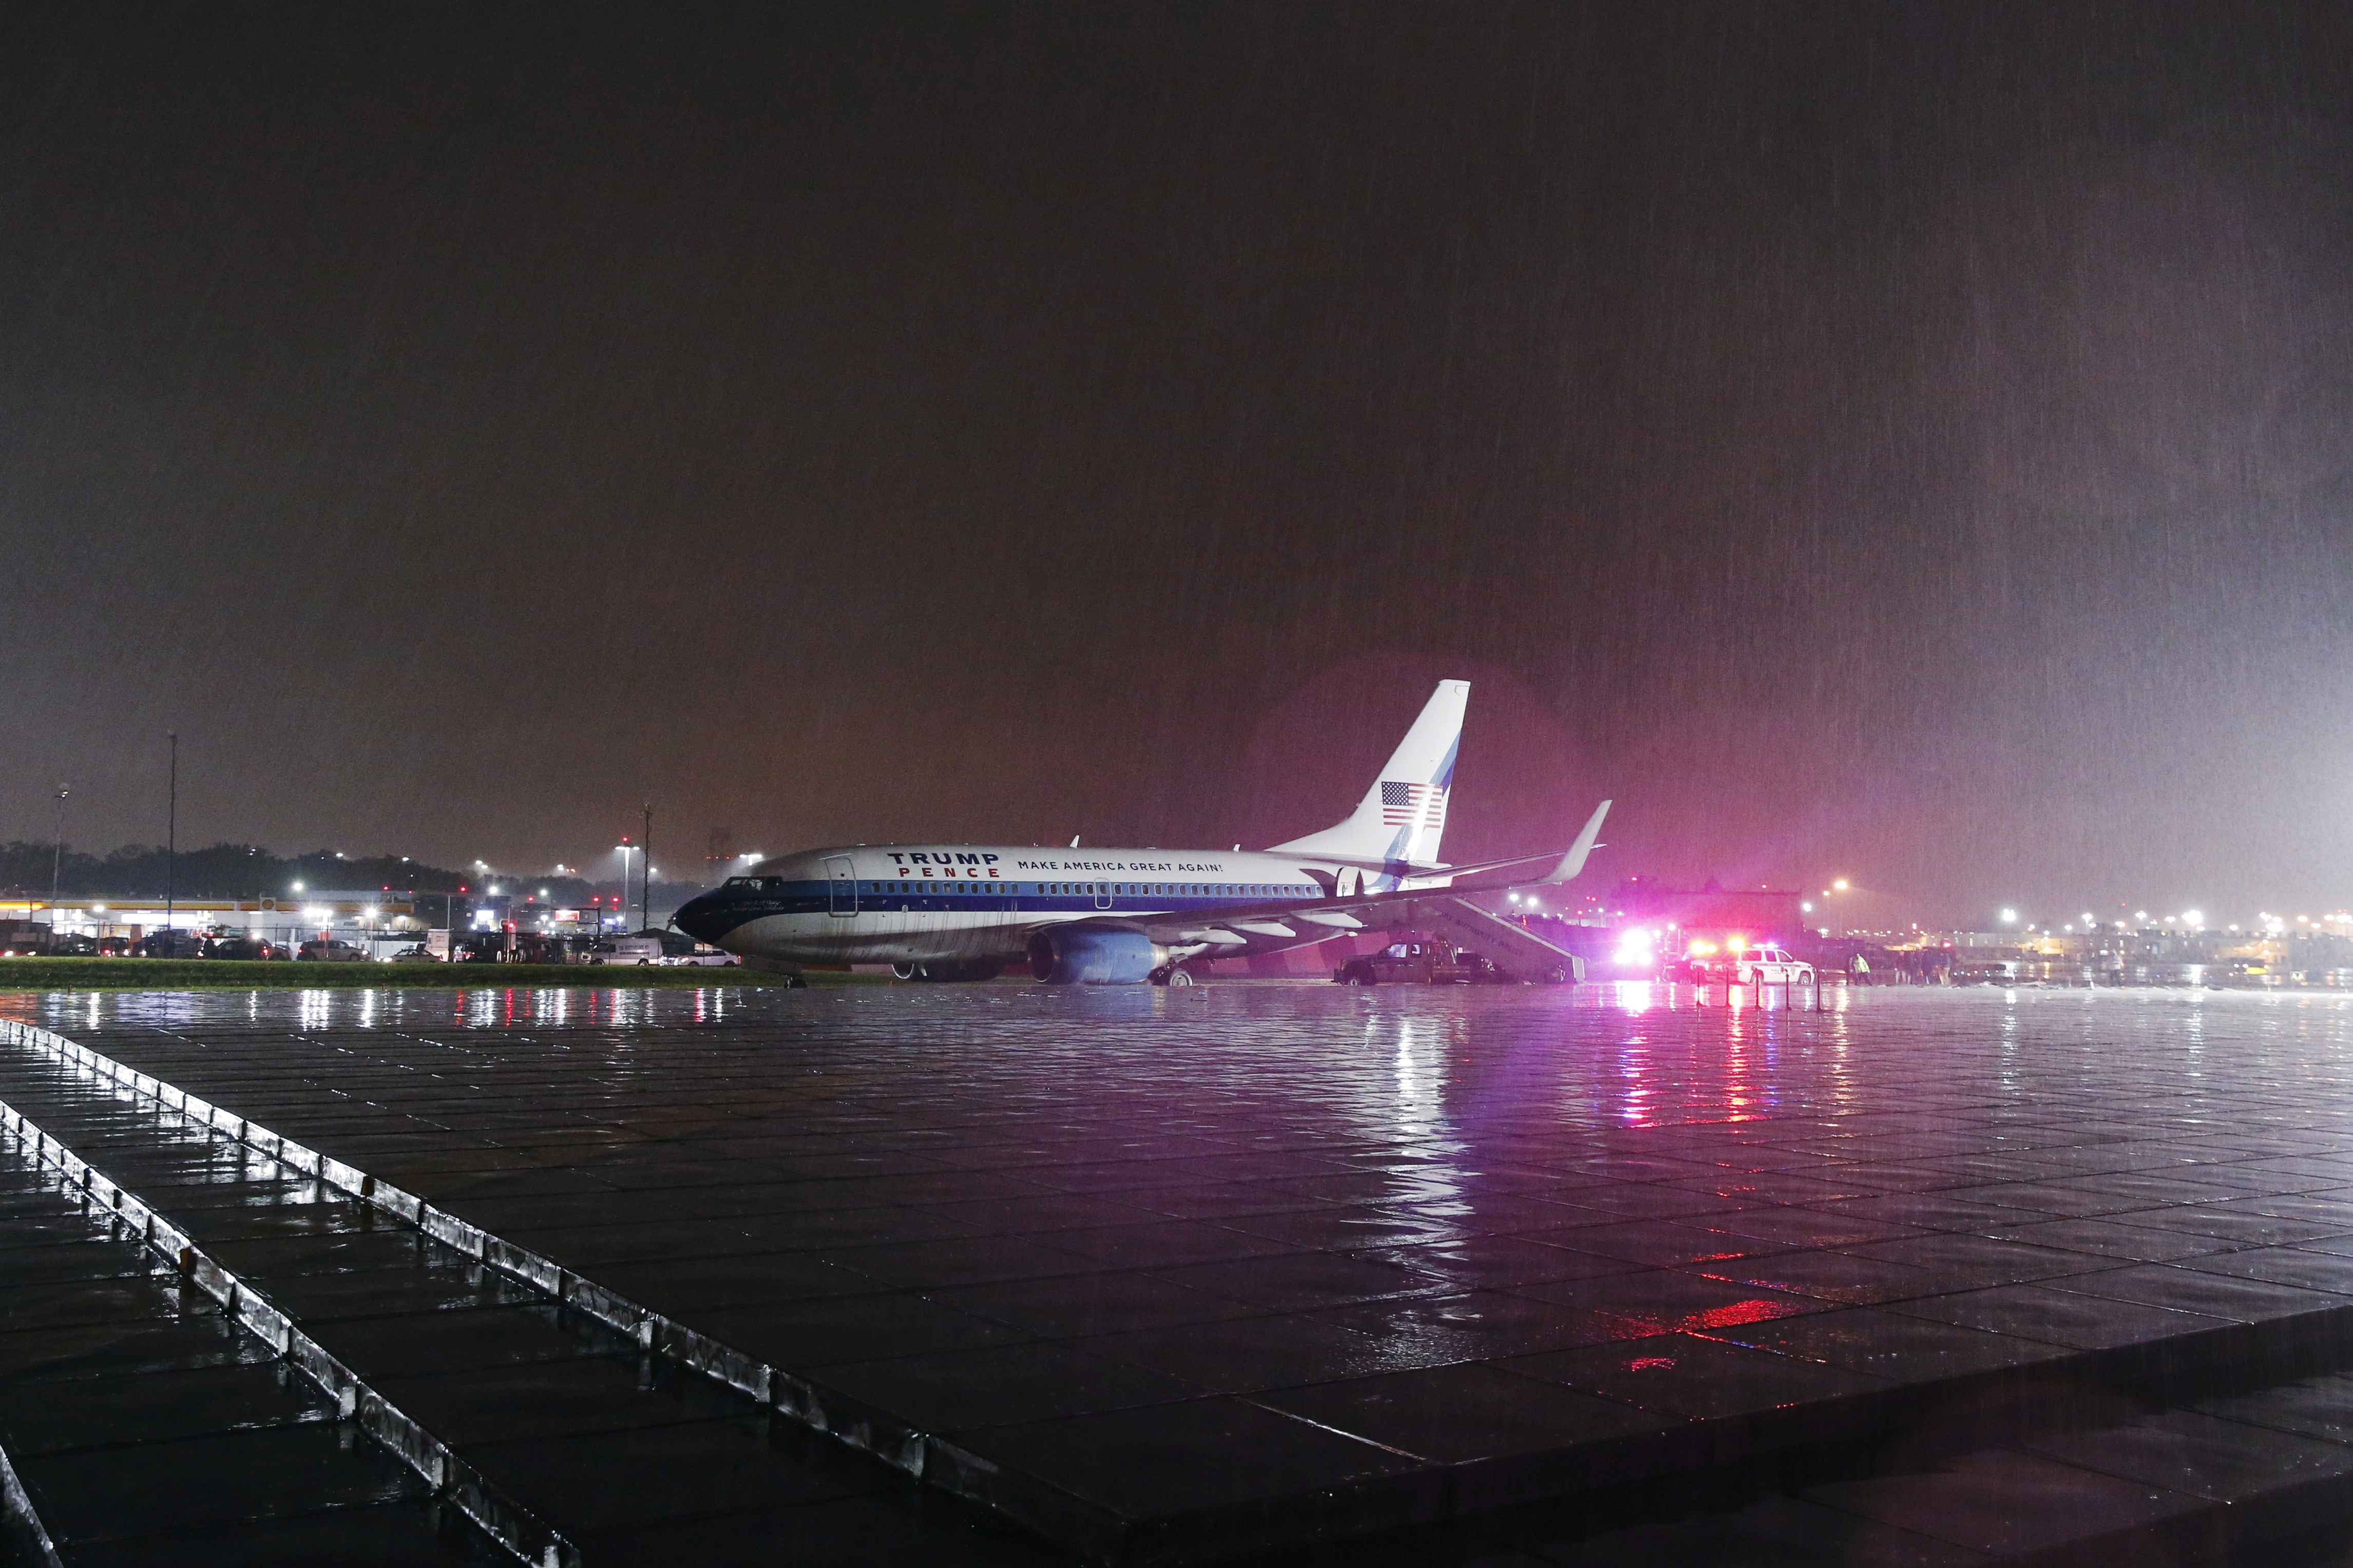 A campaign plane that had been carrying Mike Pence rests in the grass after it skidded off the runway while landing in the rain at LaGuardia Airport in New York